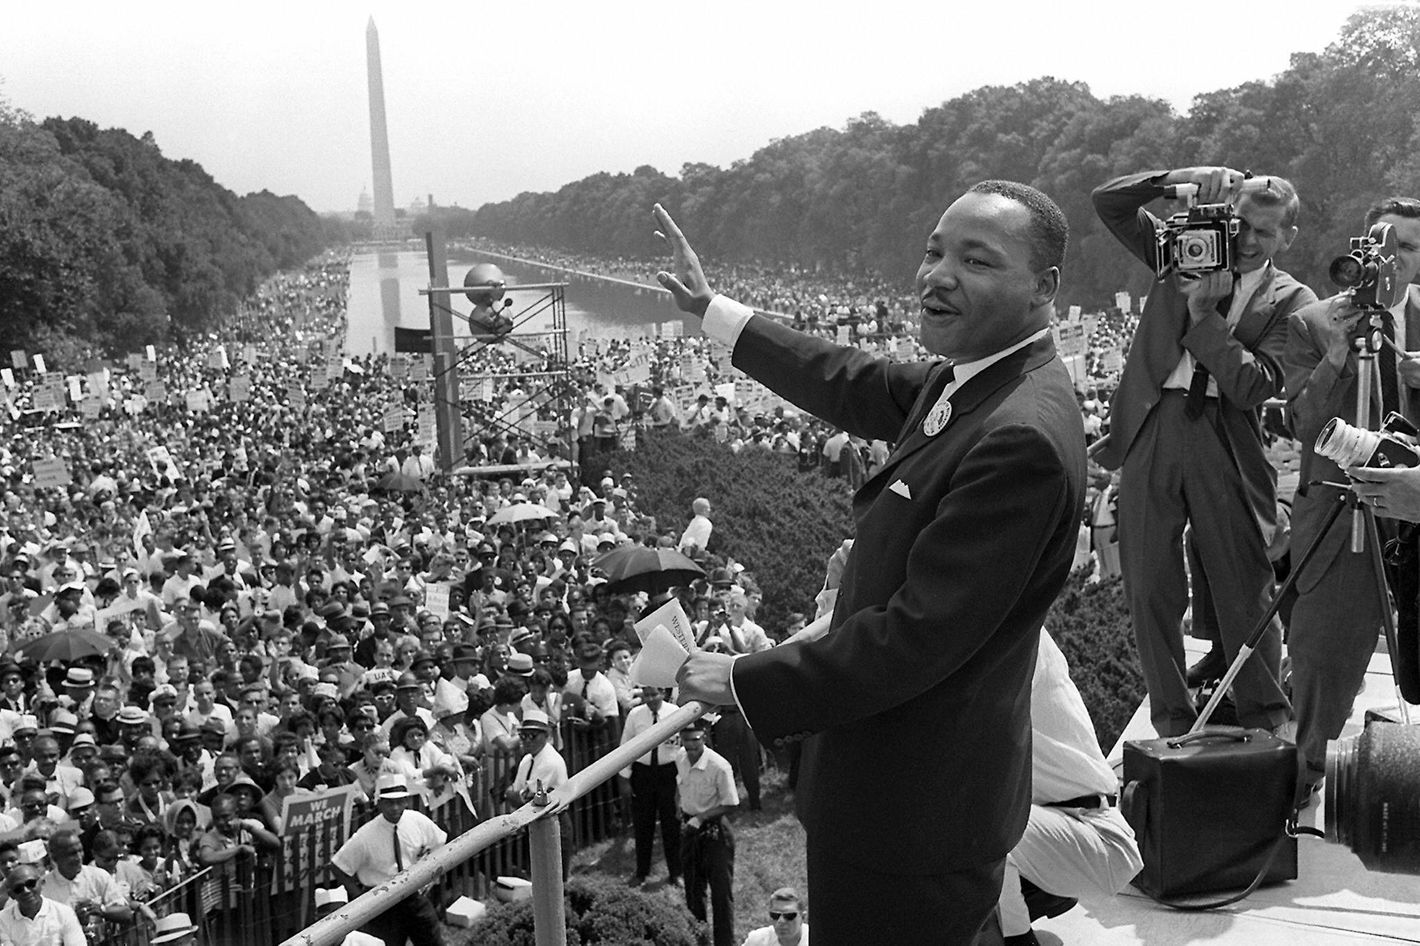 Assassination of martin luther king jr. I have a dream african.